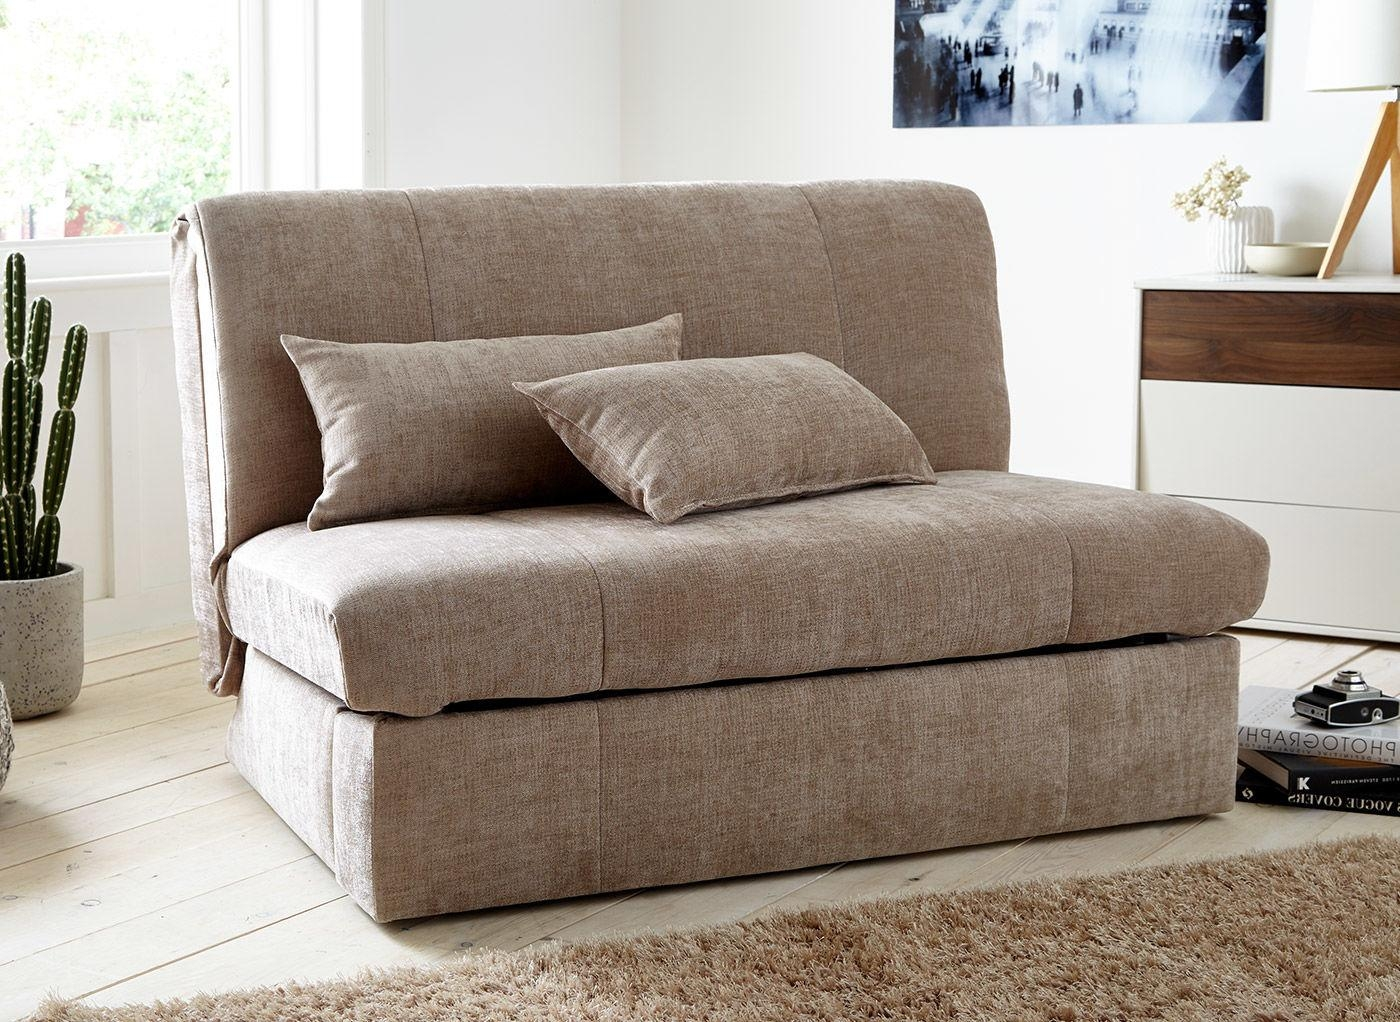 Sofa Beds With Storage – Buy Online Or In Store | Dreams Intended For Storage Sofa Beds (View 15 of 20)